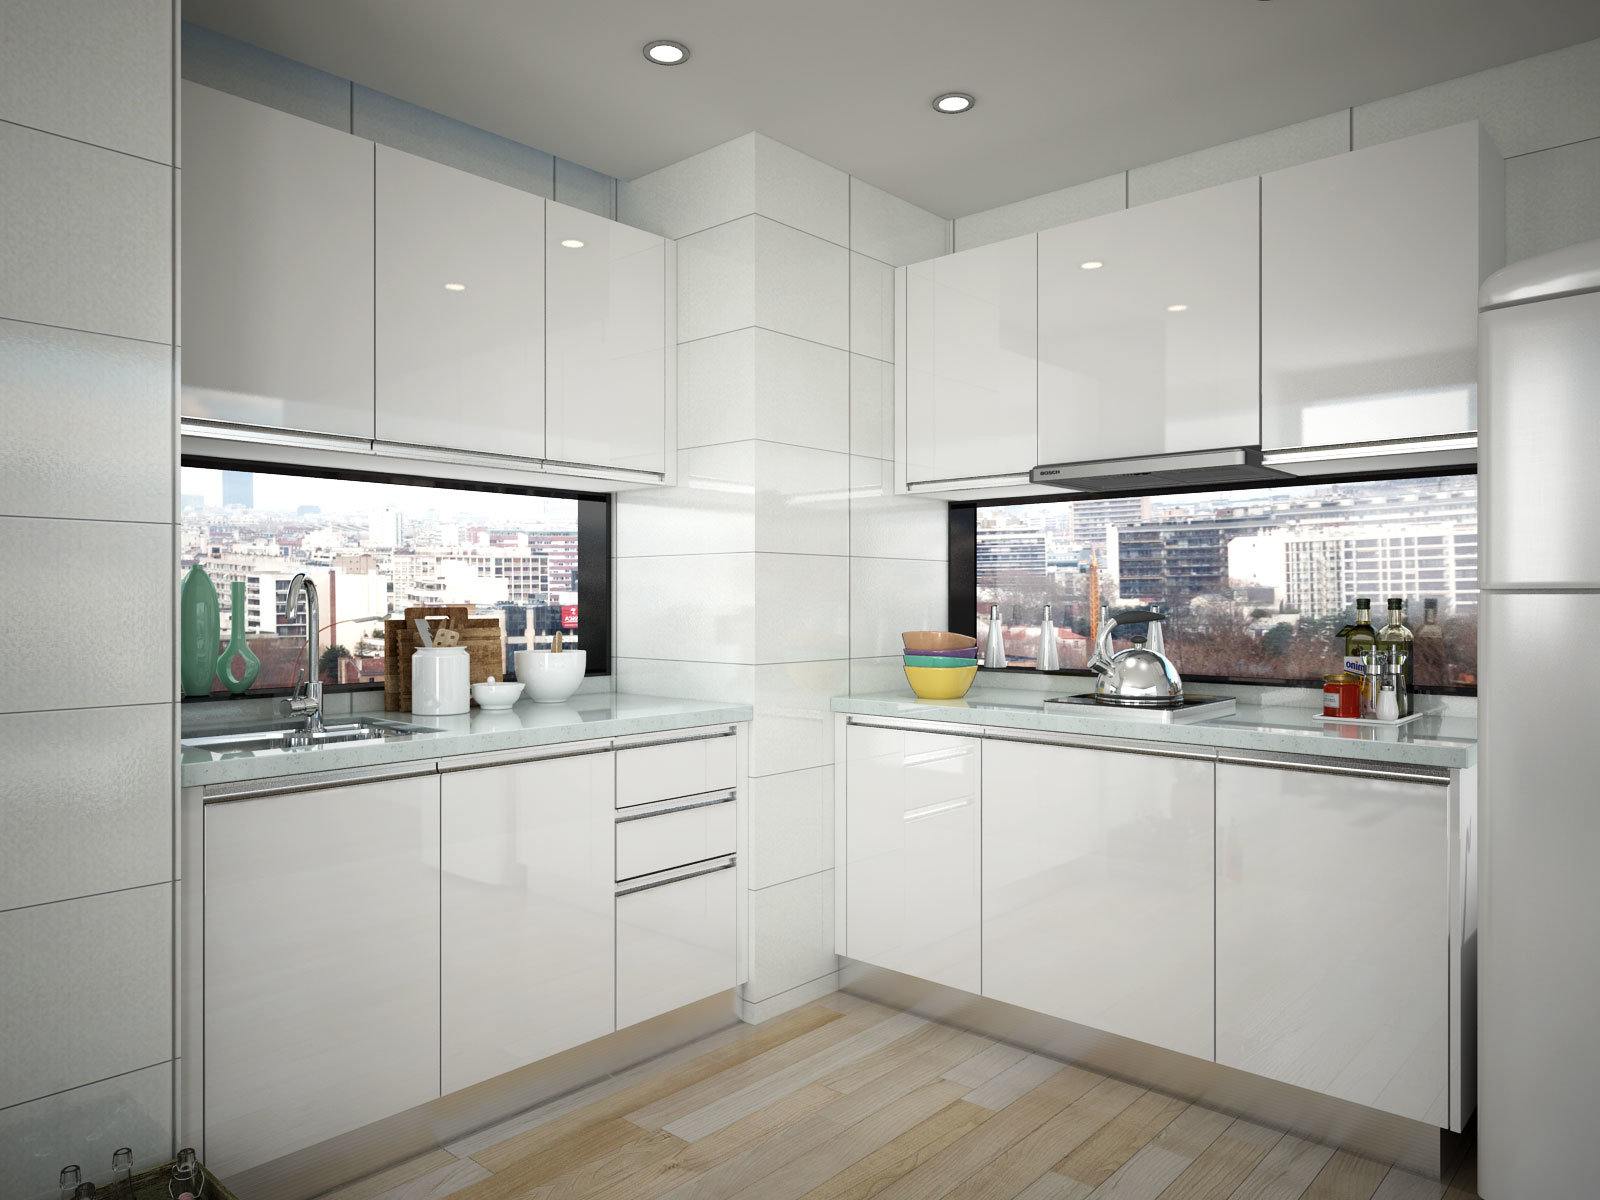 China Oppein Best Interior Design Small Hpl Kitchen